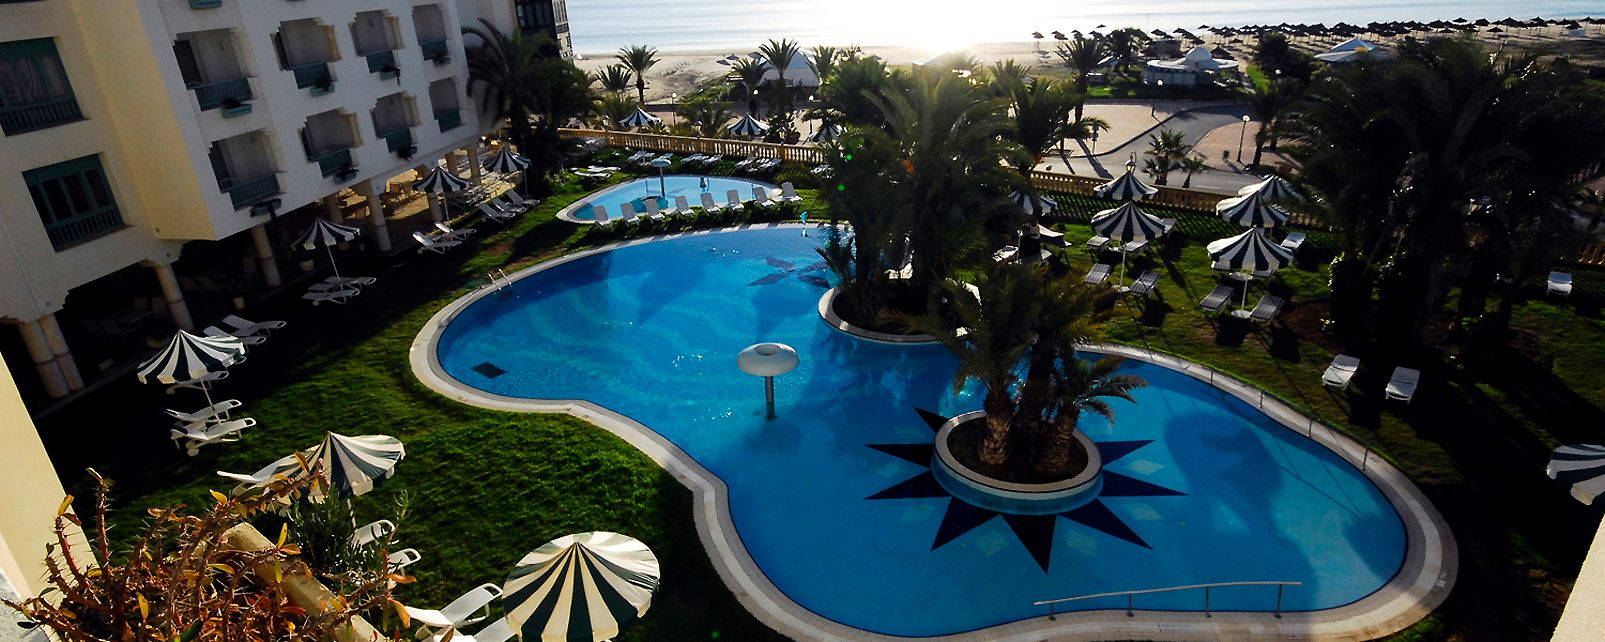 Hotel Mehari Hammamet 5, Tunisia, Hammamet: tourists reviews 61